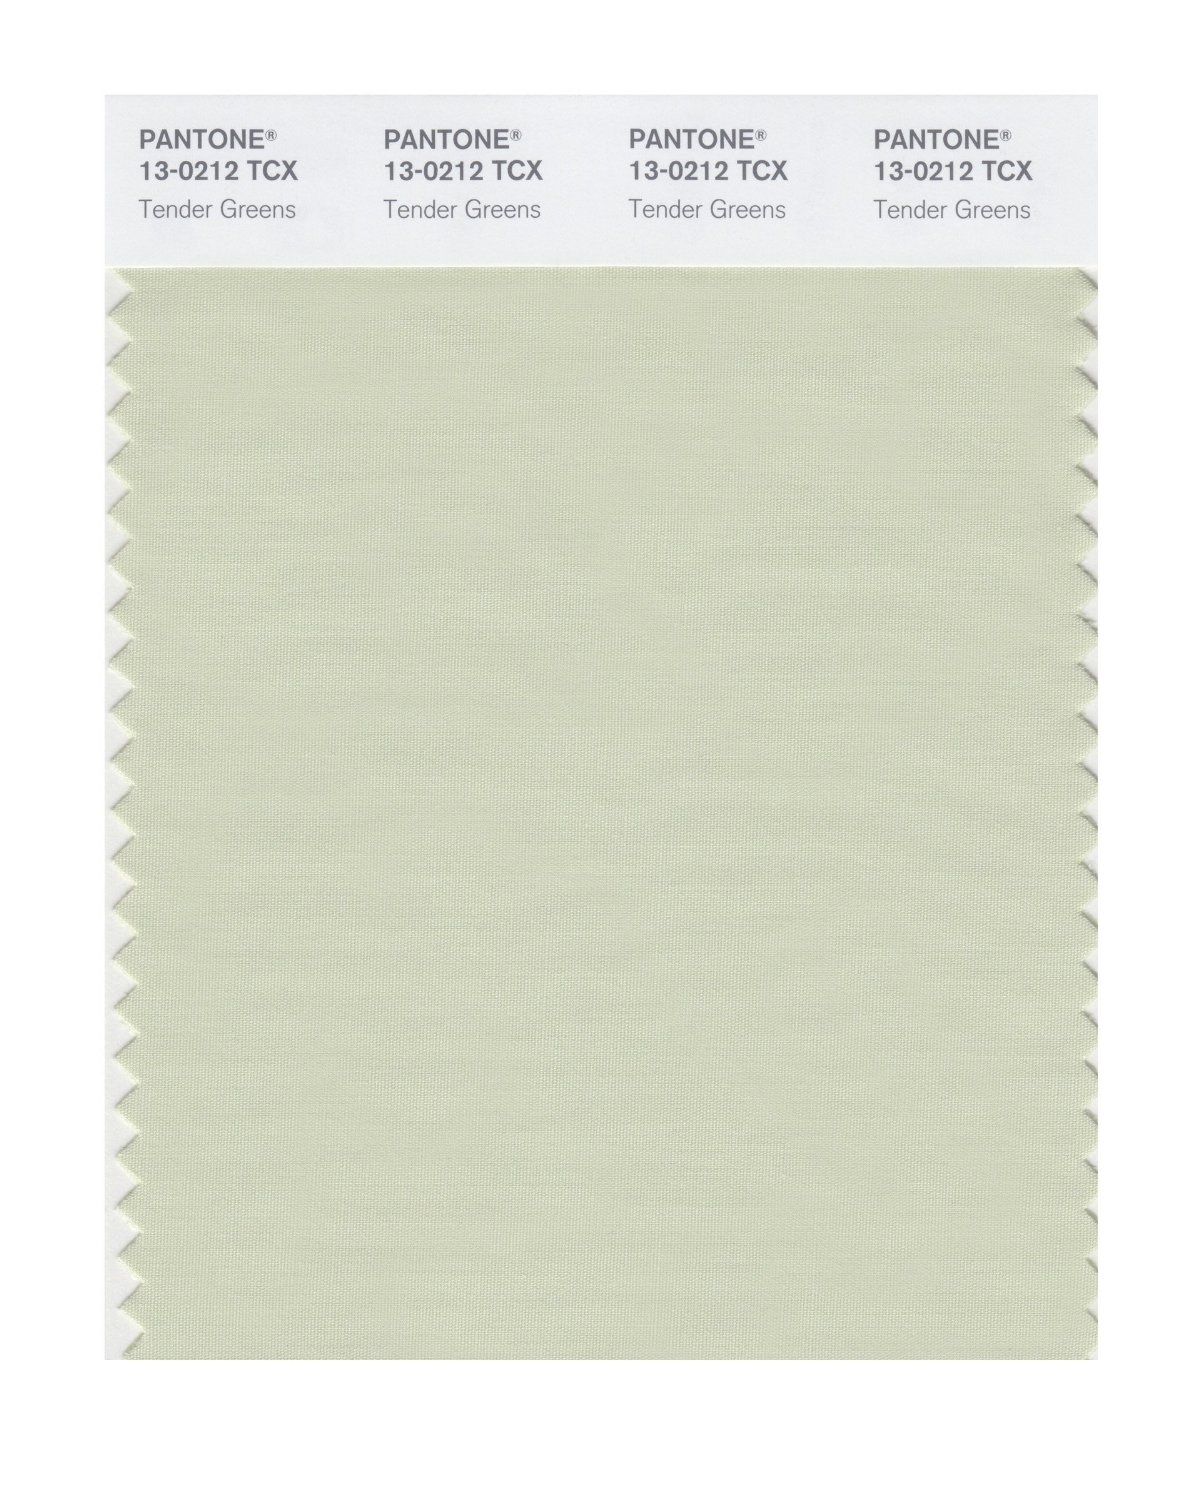 Pantone Smart Swatch 13-0212 Tender Greens